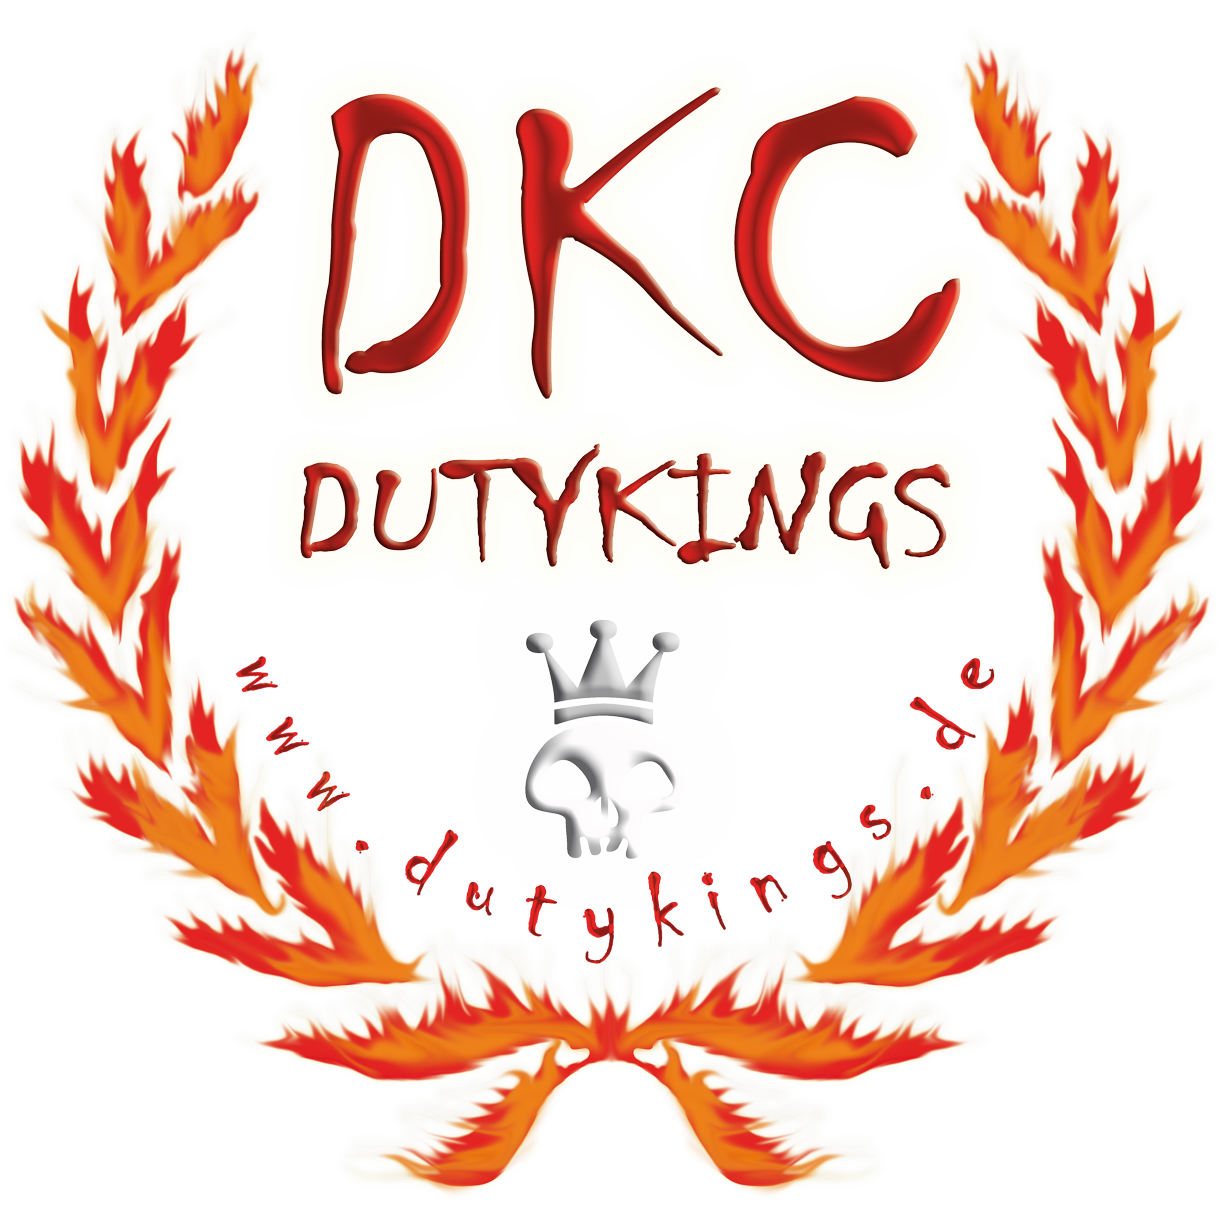 Duty Kings